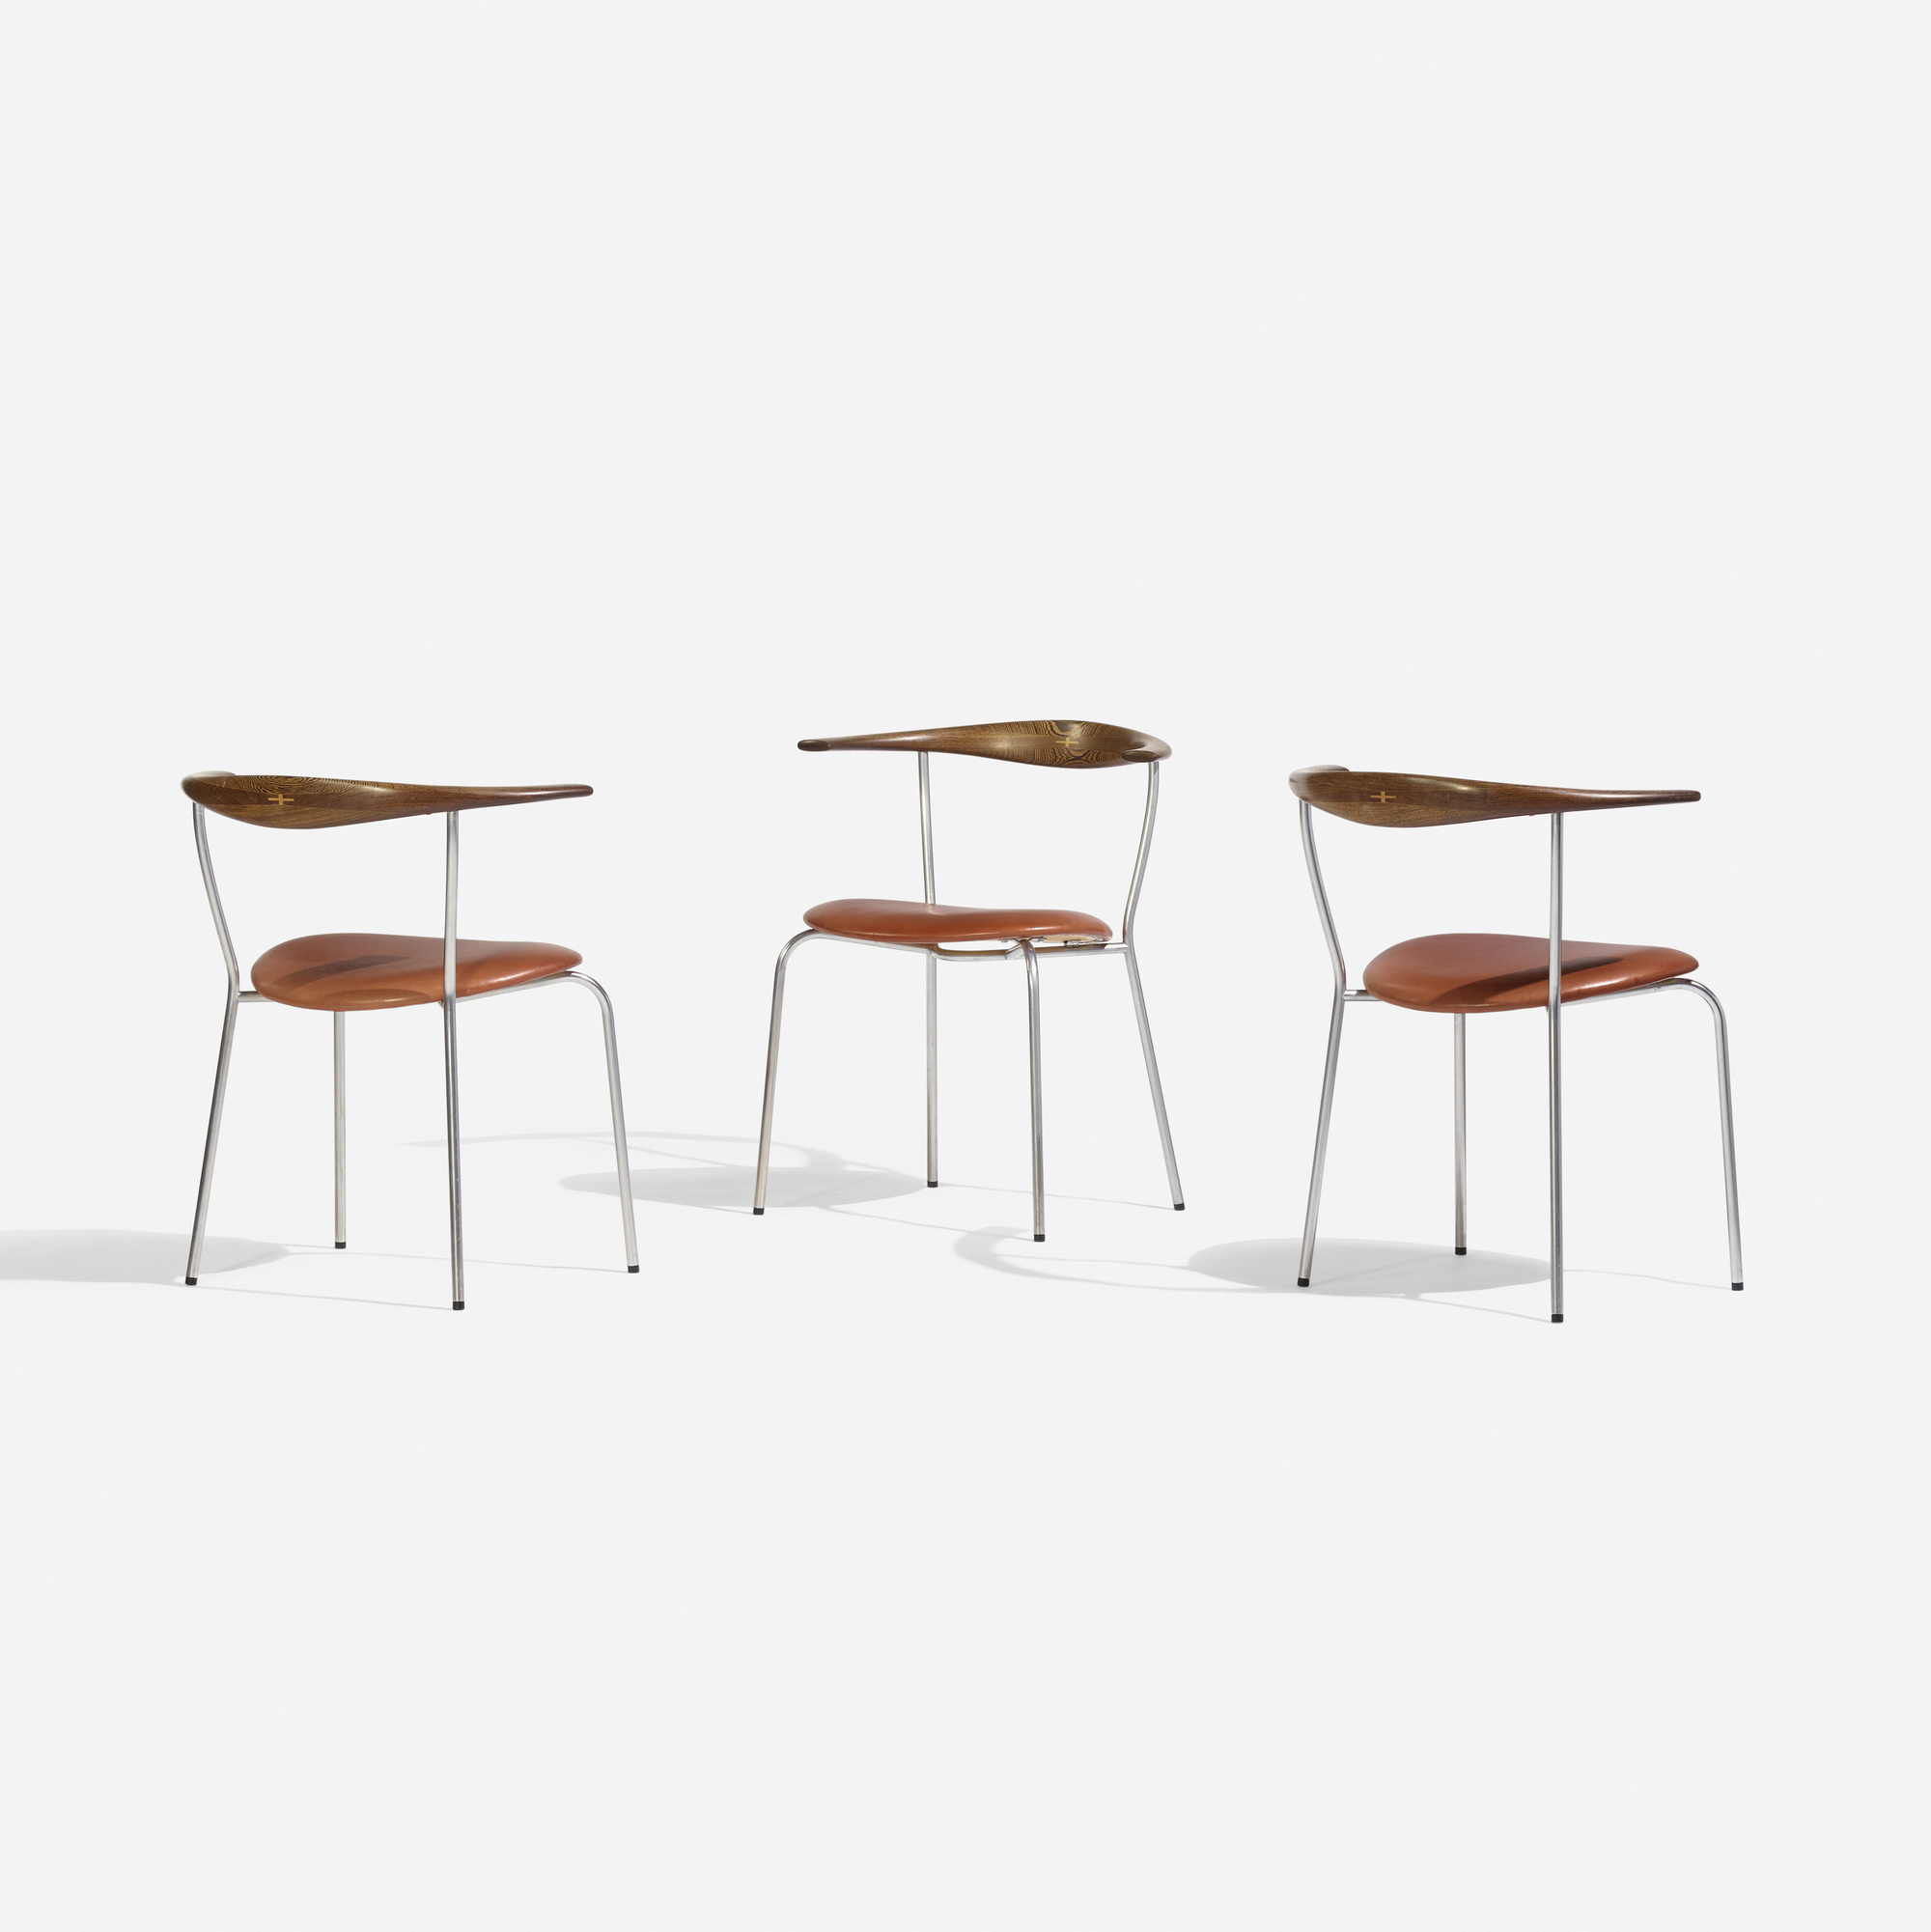 149: Hans J. Wegner / dining chairs model JH701, set of six (3 of 4)